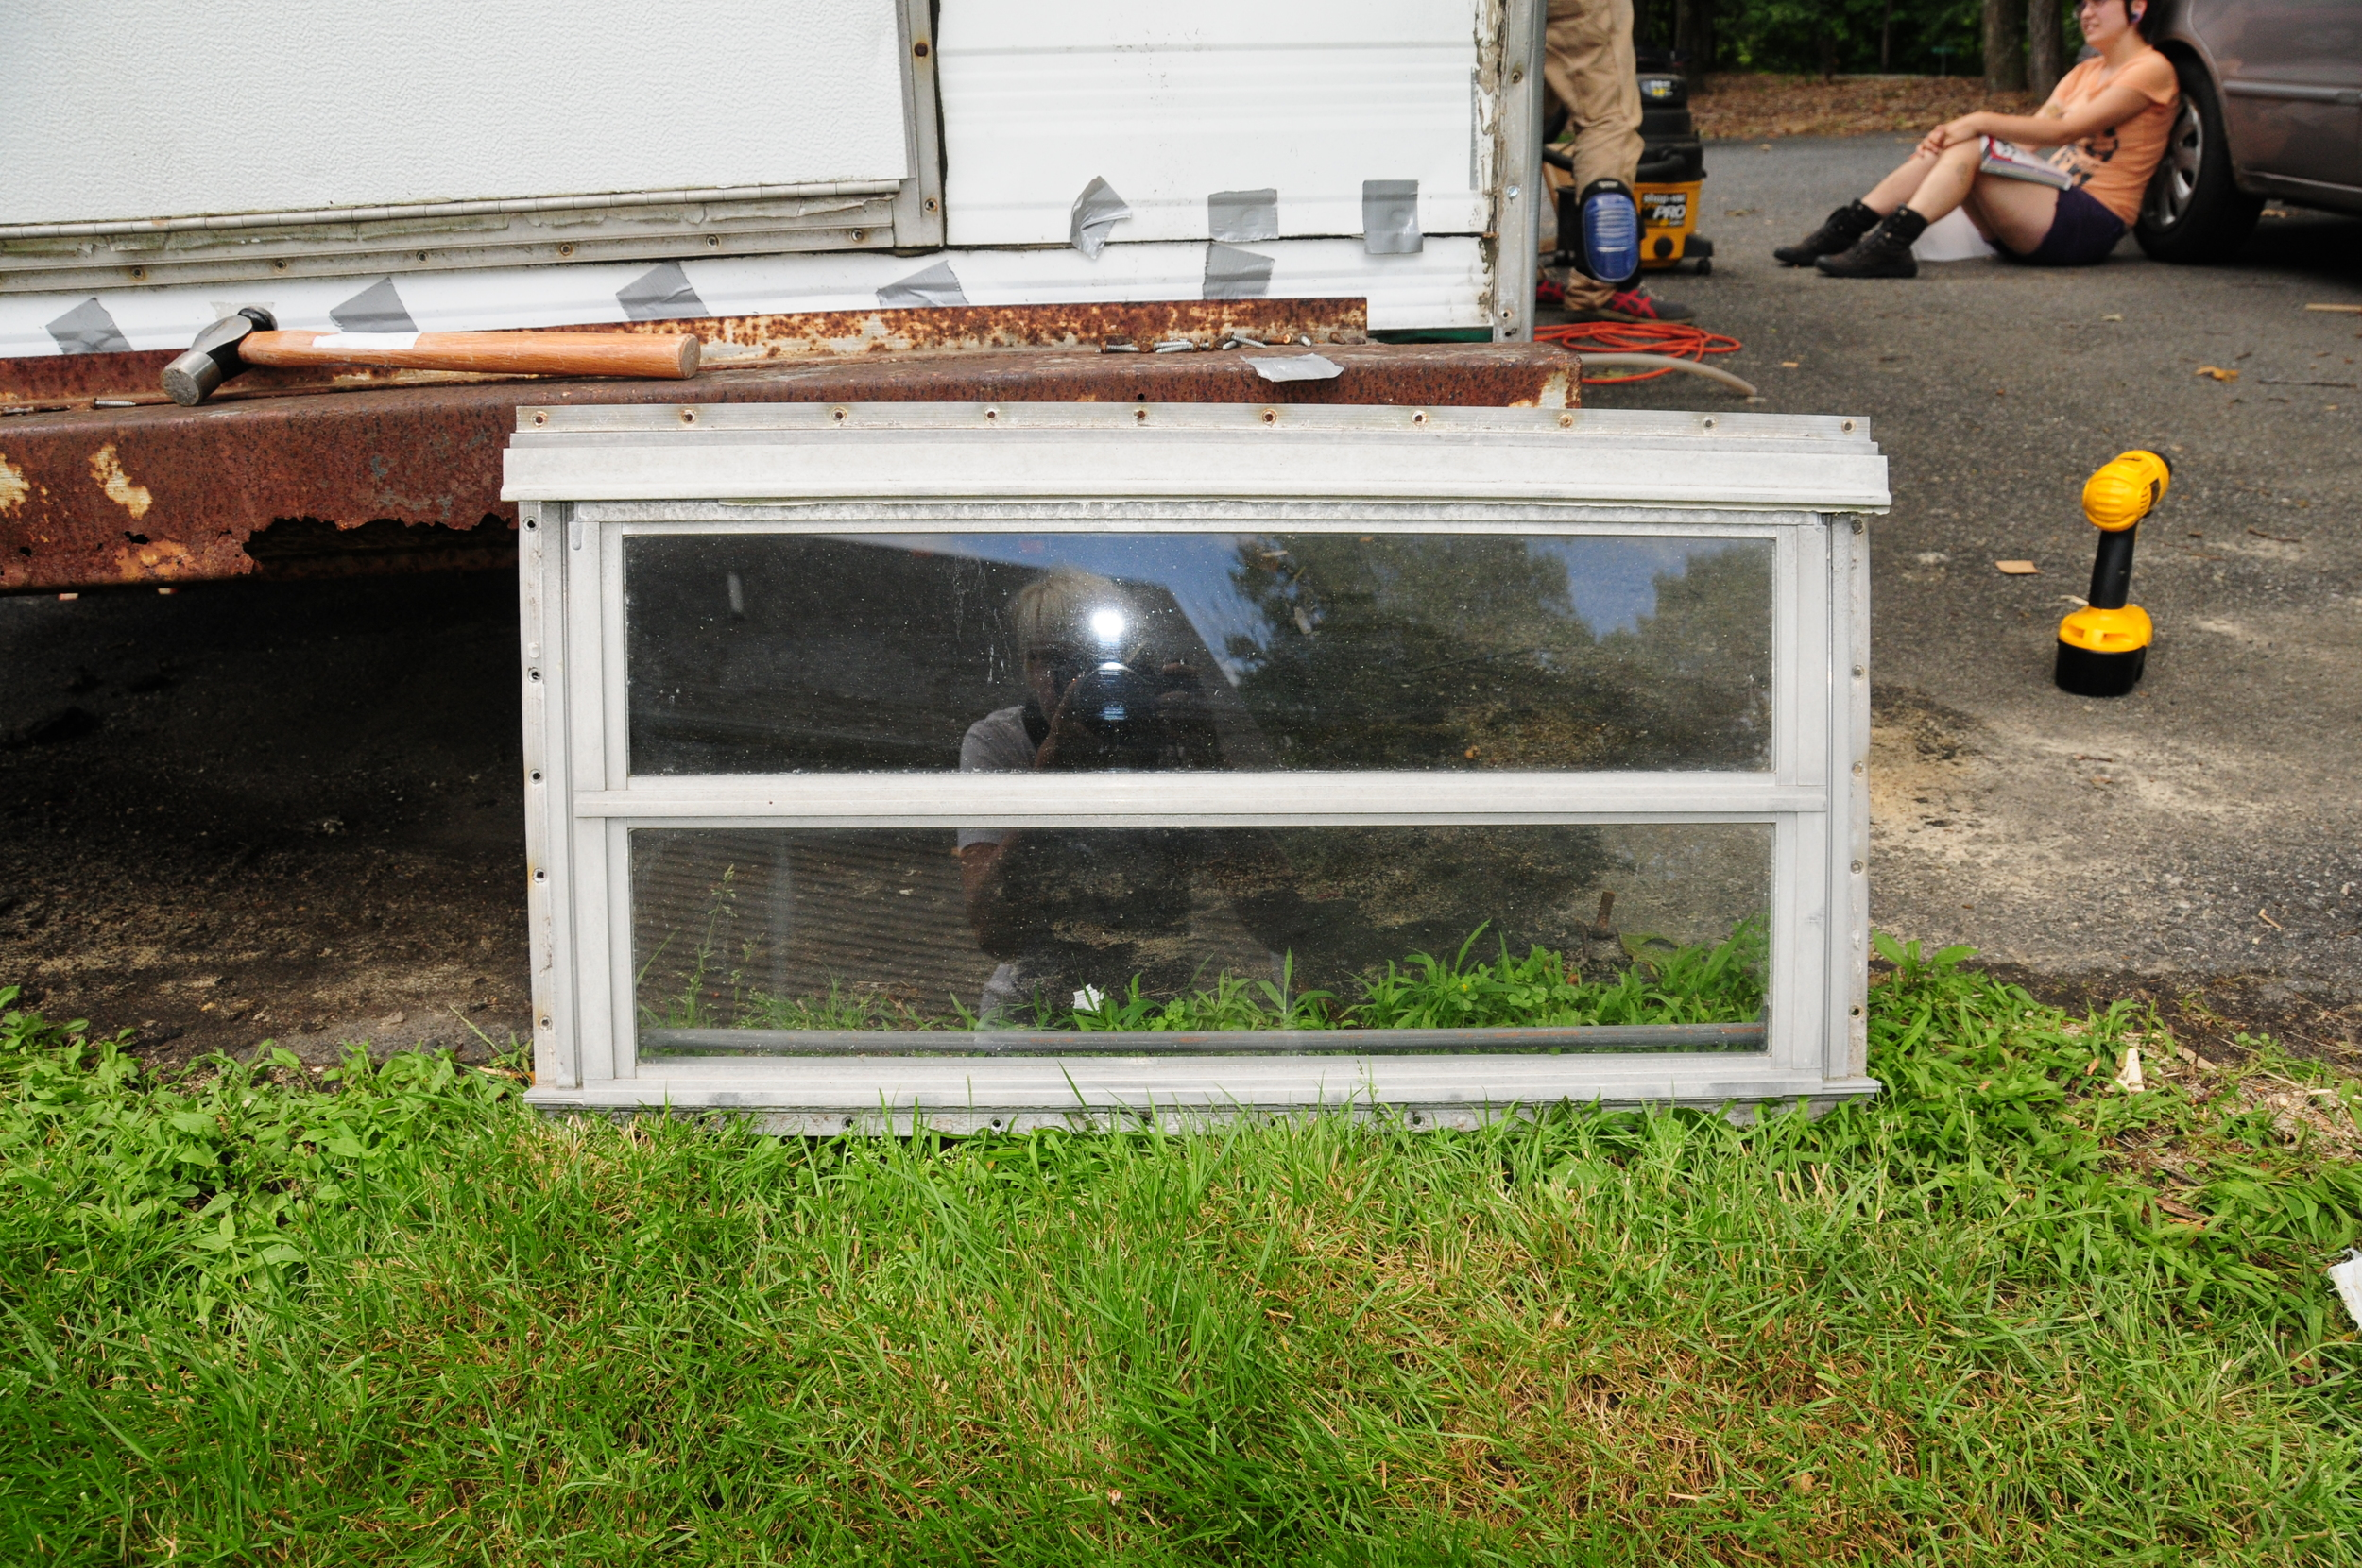 Campers For Sale Near Me >> Replacing a Window in a Vintage Trailer: Thank You Fletcher's Trailer Sales! — COMETCAMPER